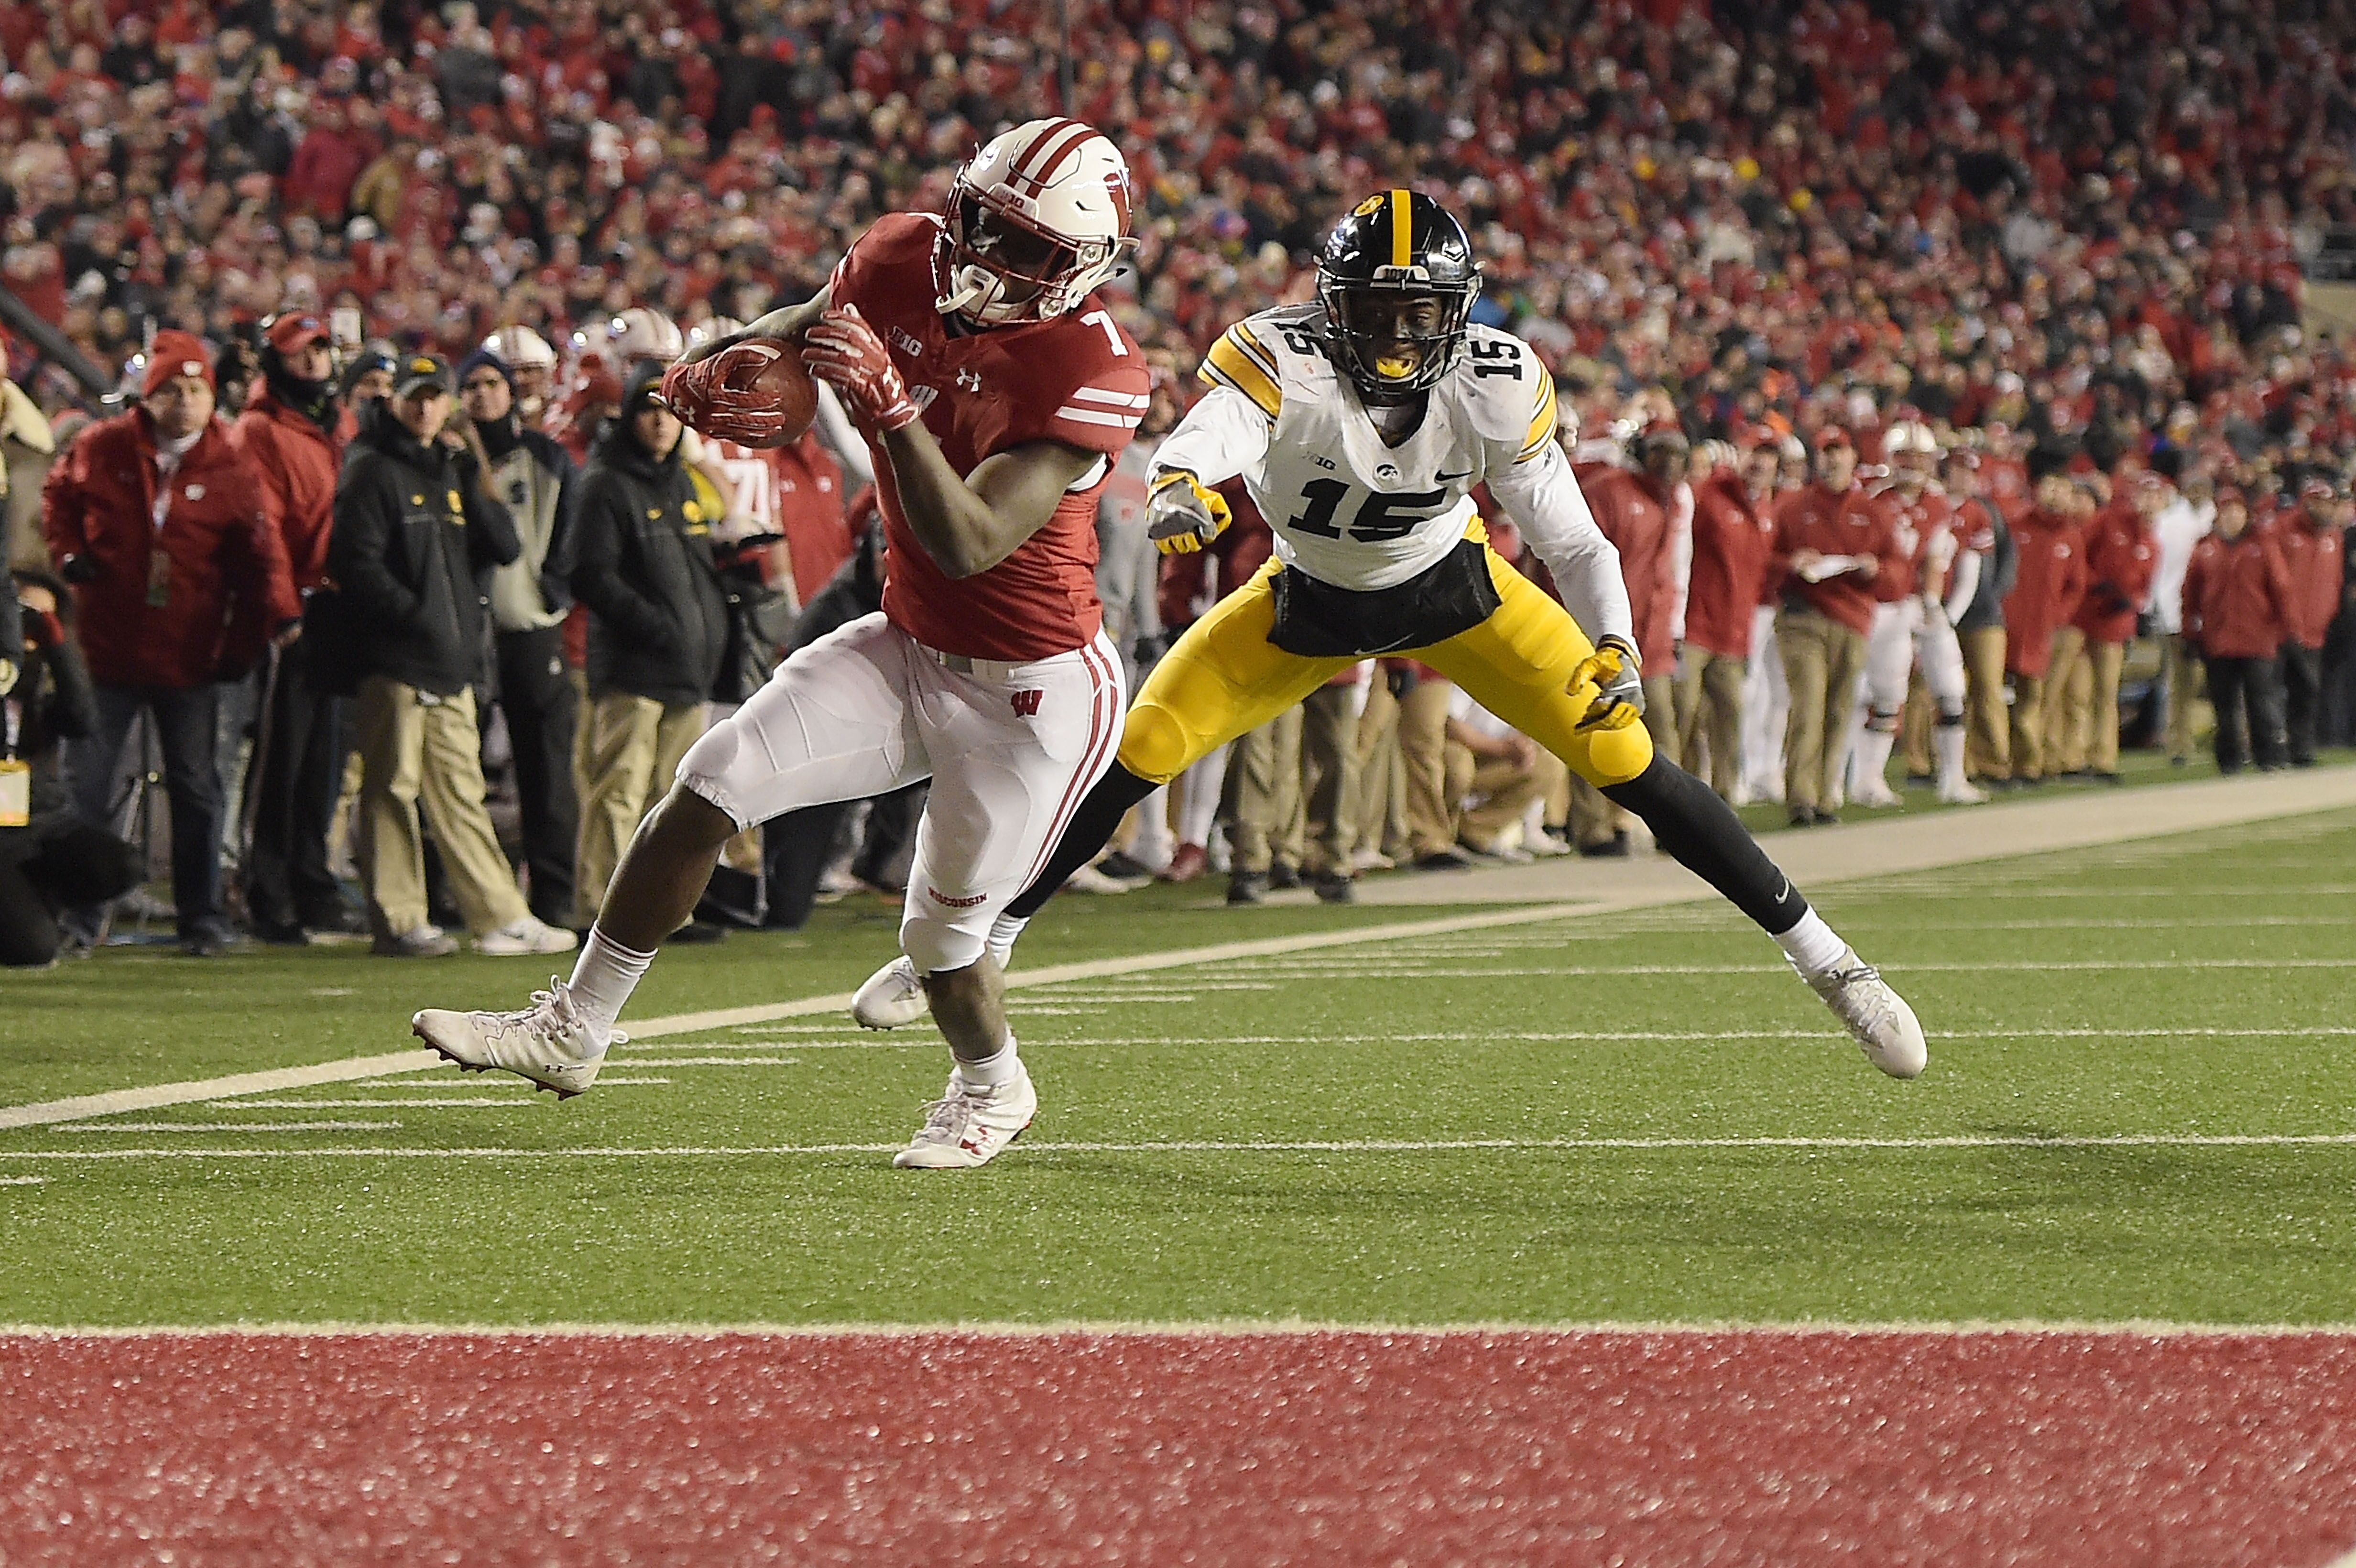 Wisconsin Football Will Badgers Be On Upset Alert Again